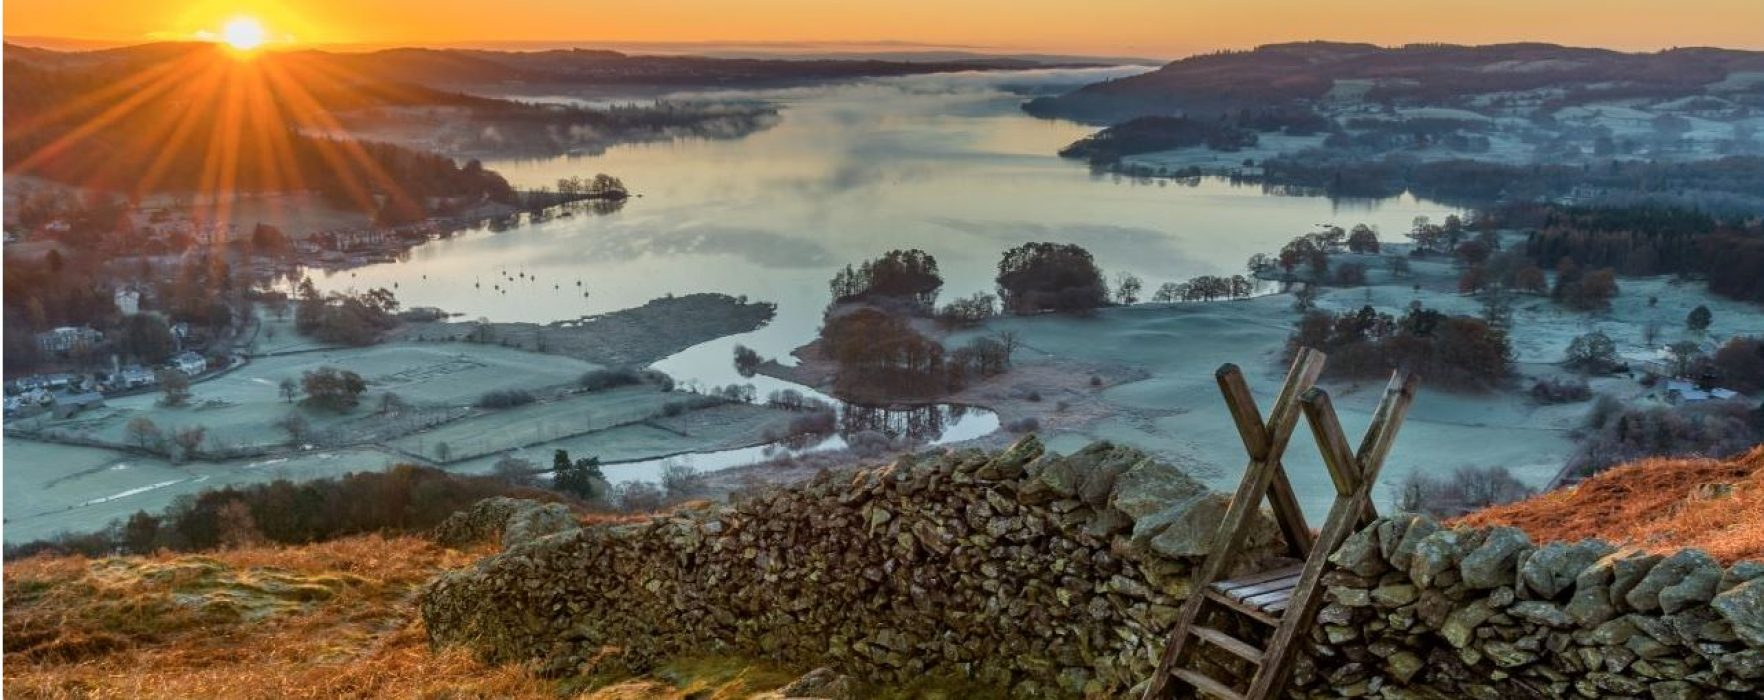 8 reasons to indulge in a short break in the Lake District